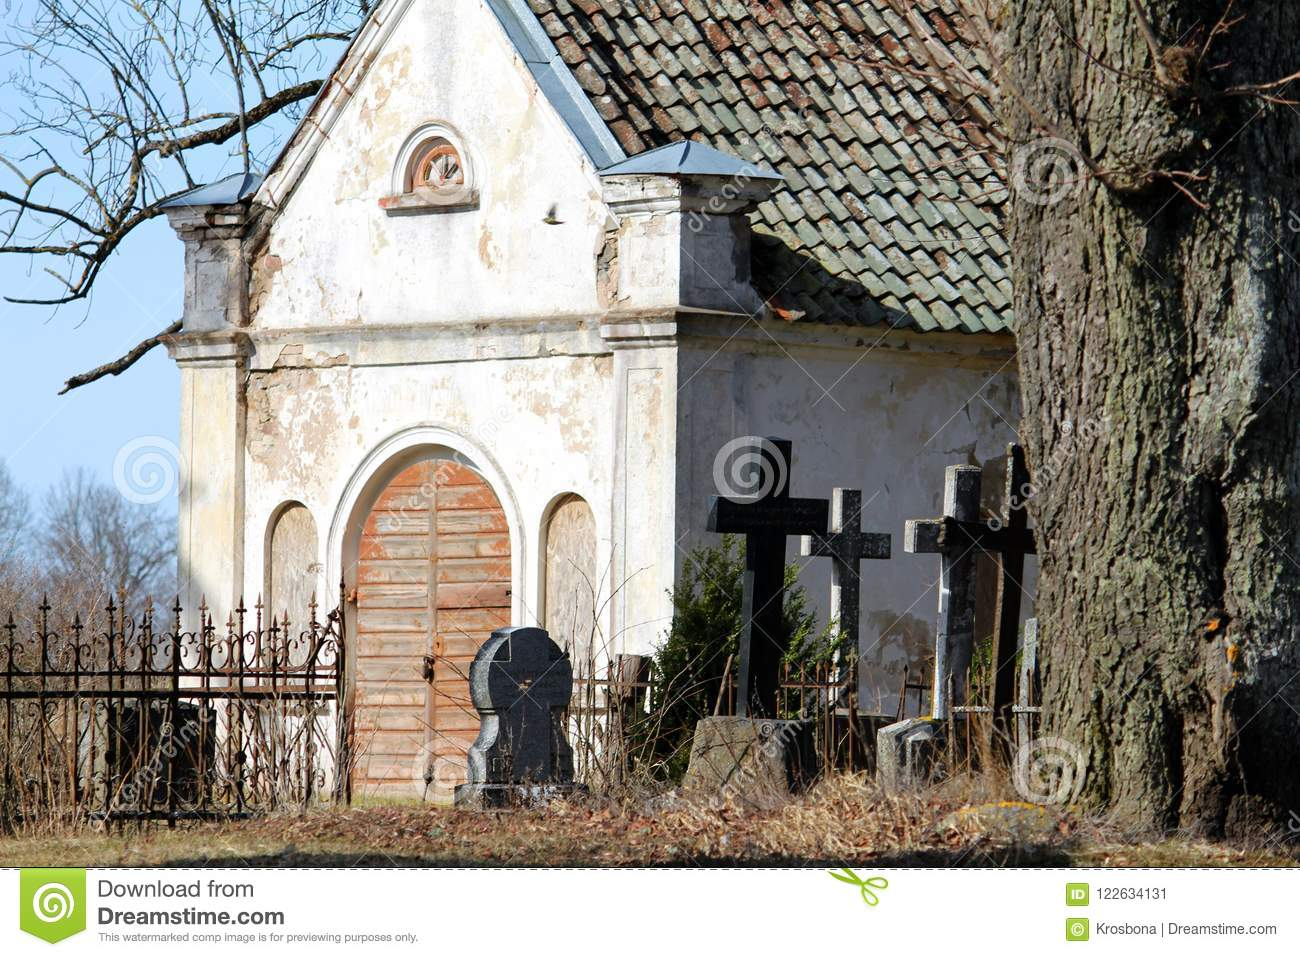 Ancients cemetry in Latvia